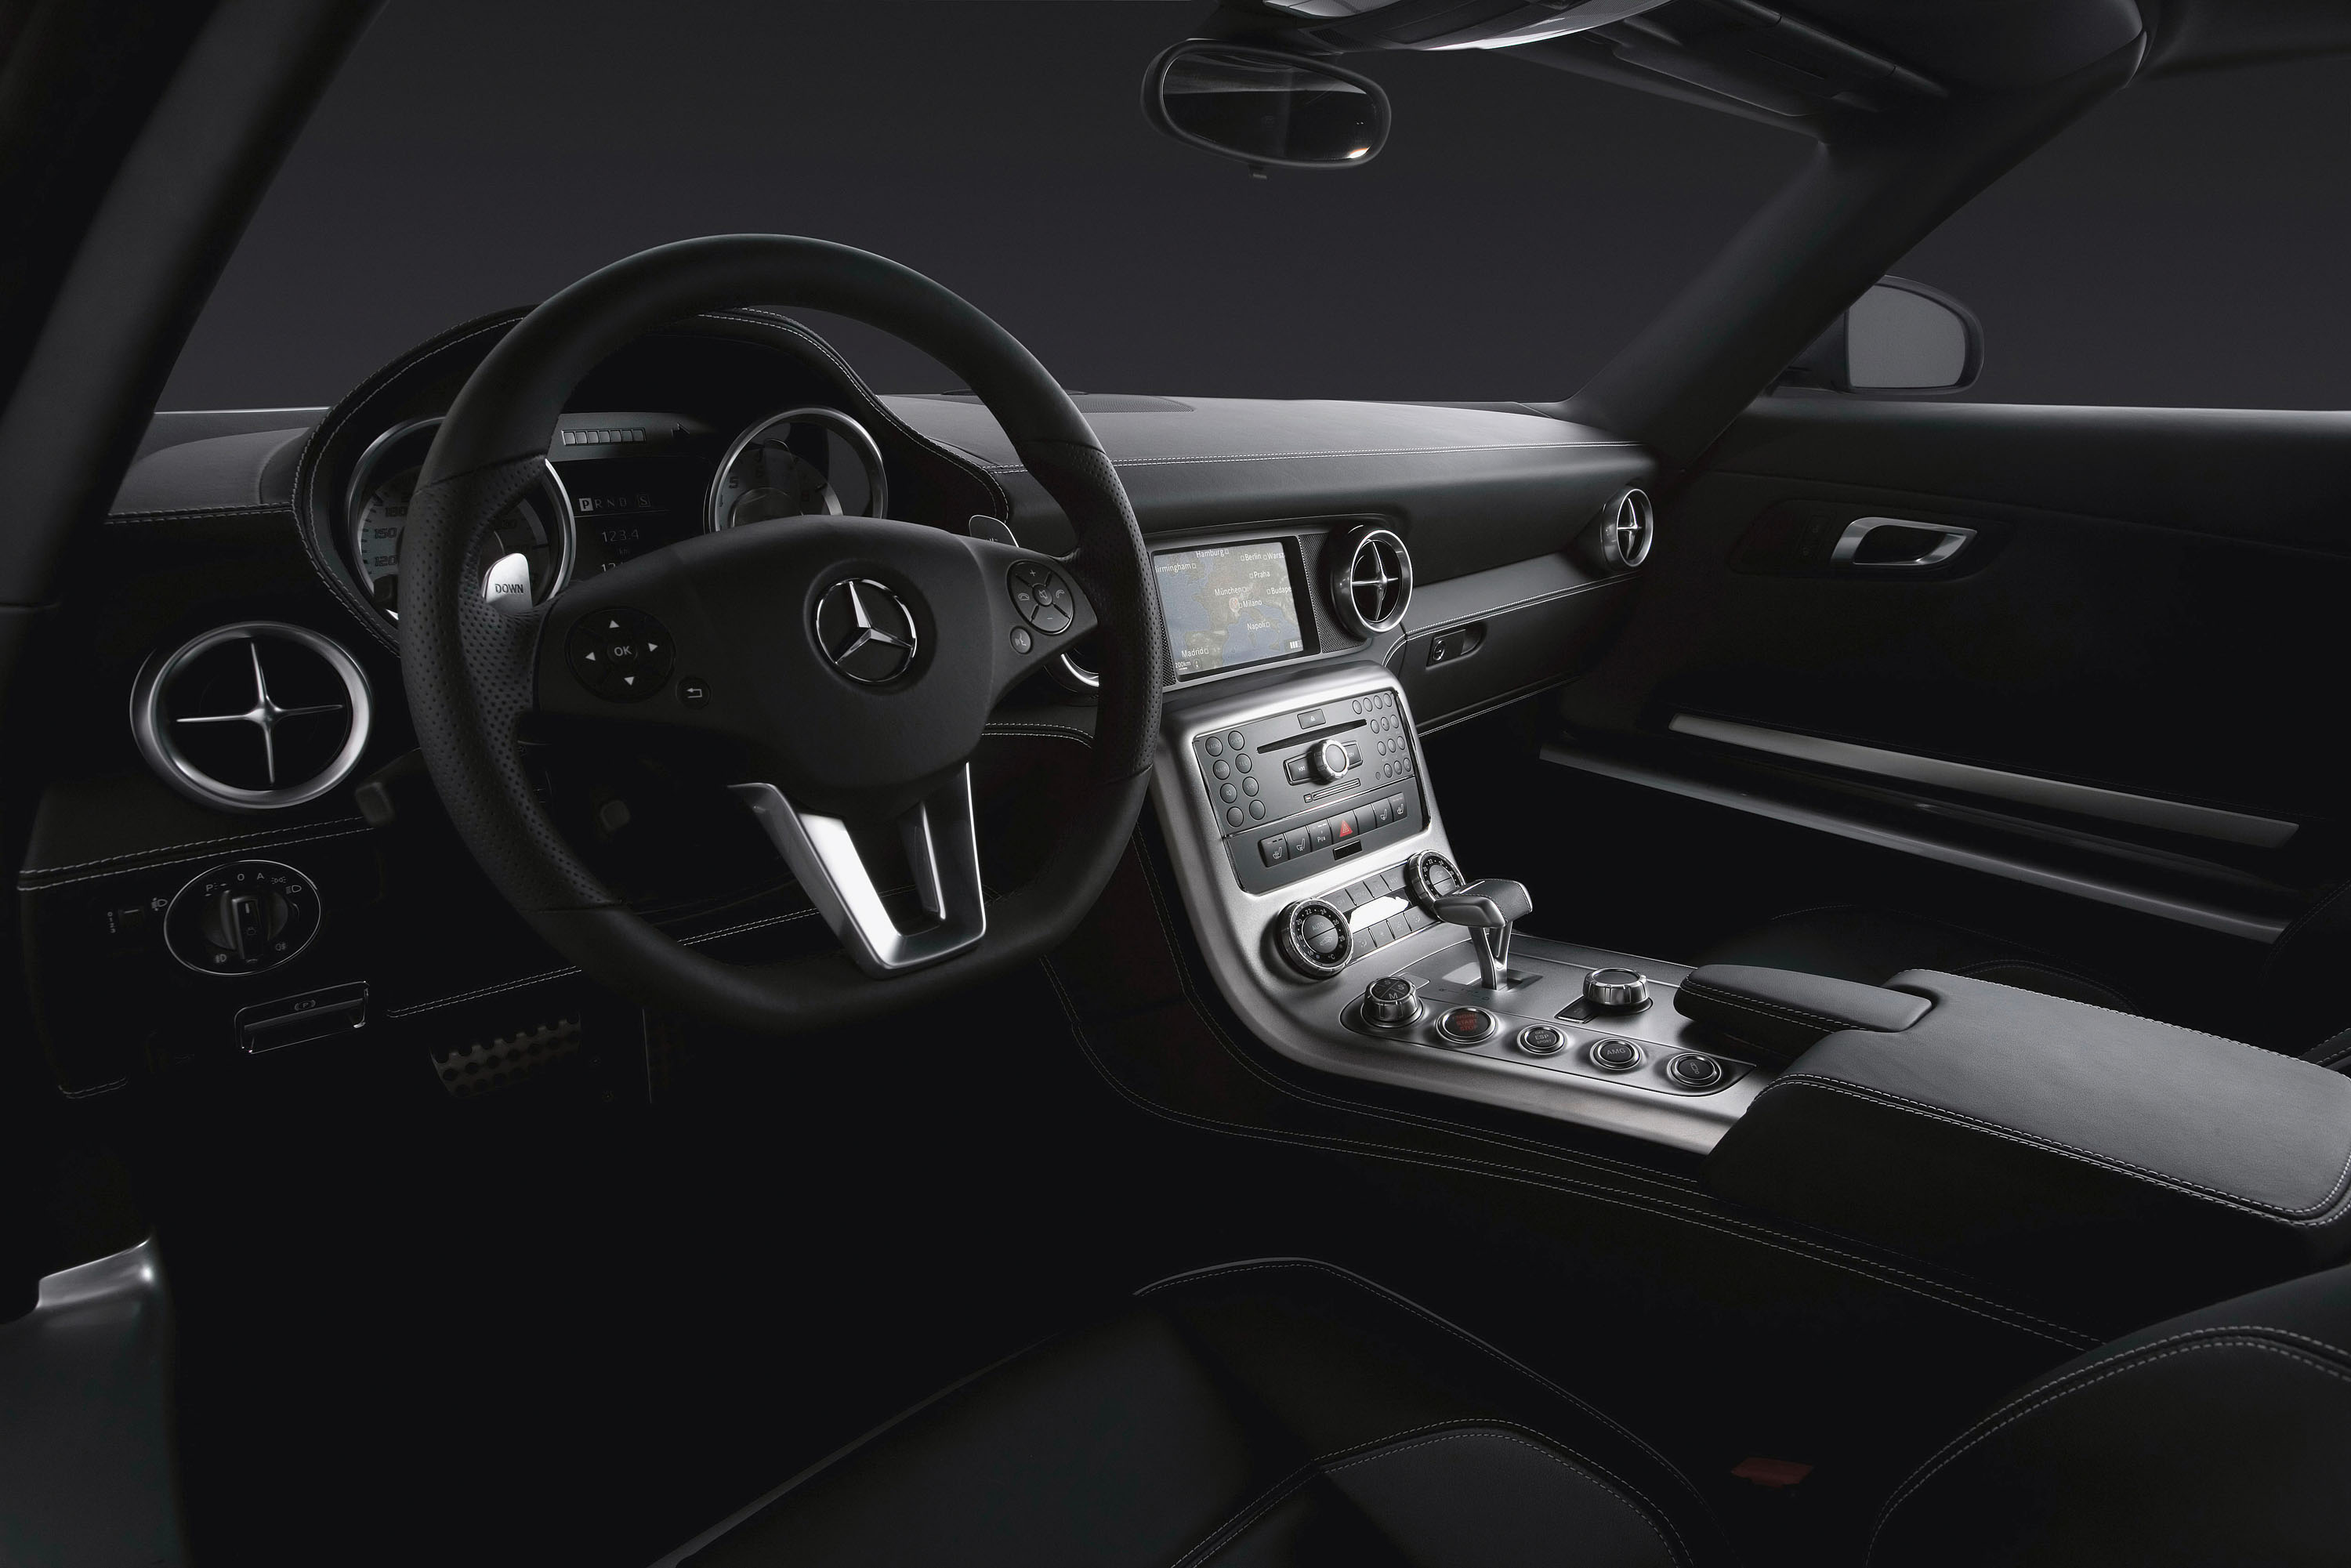 Mercedes-Benz SLS AMG Interior - Picture 19689